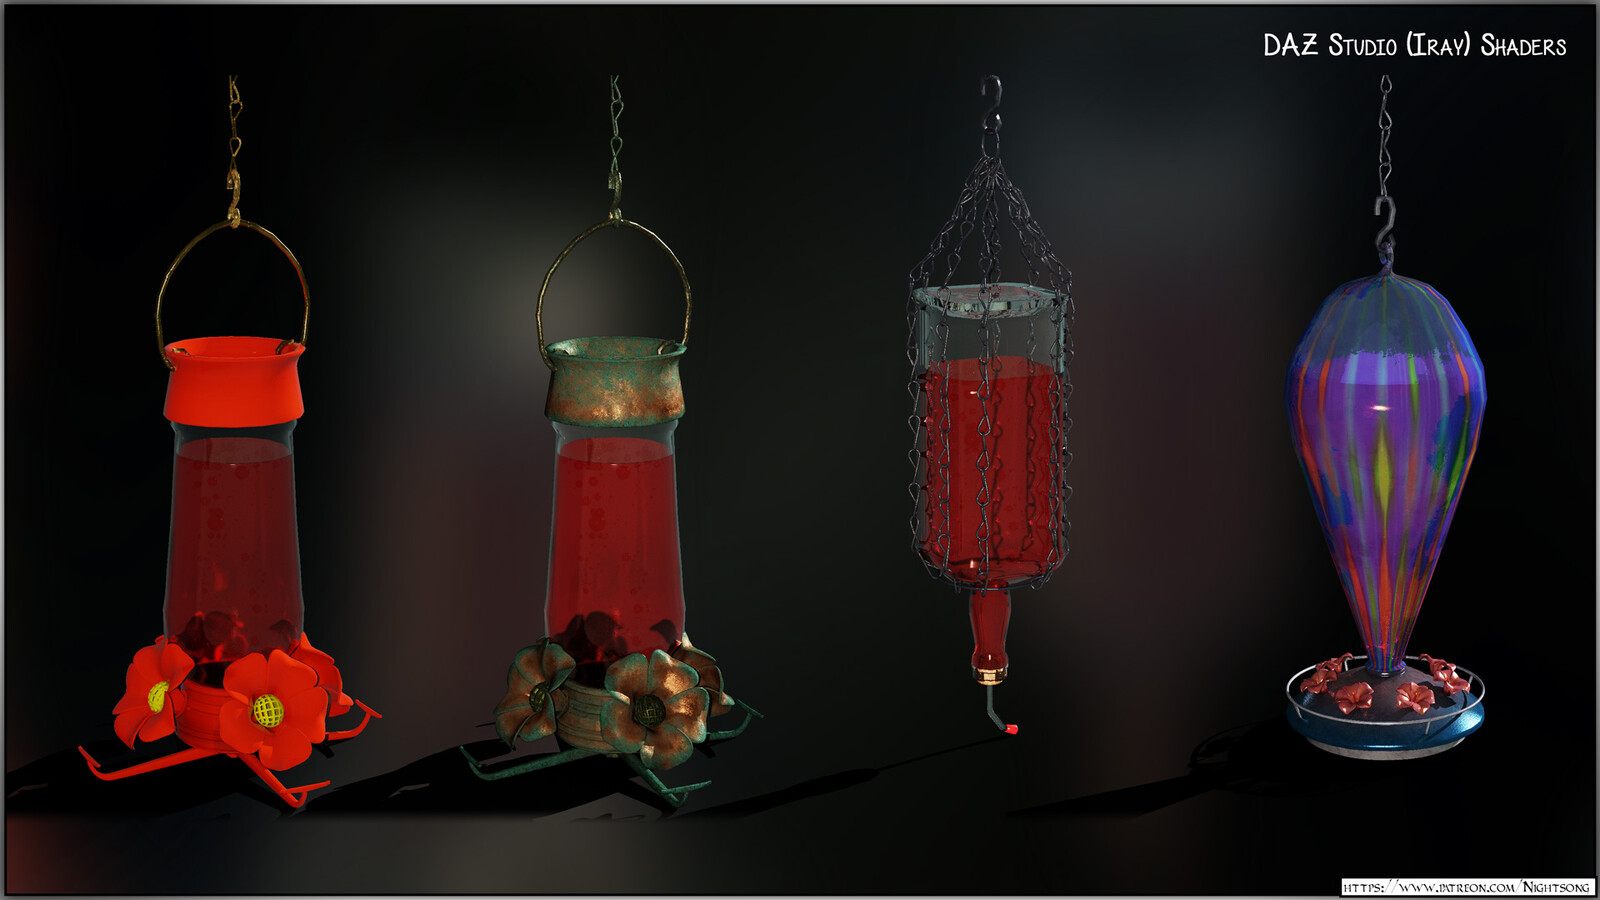 A texture preview of the hummingbird feeders in DAZ Studio, using the Iray render engine.